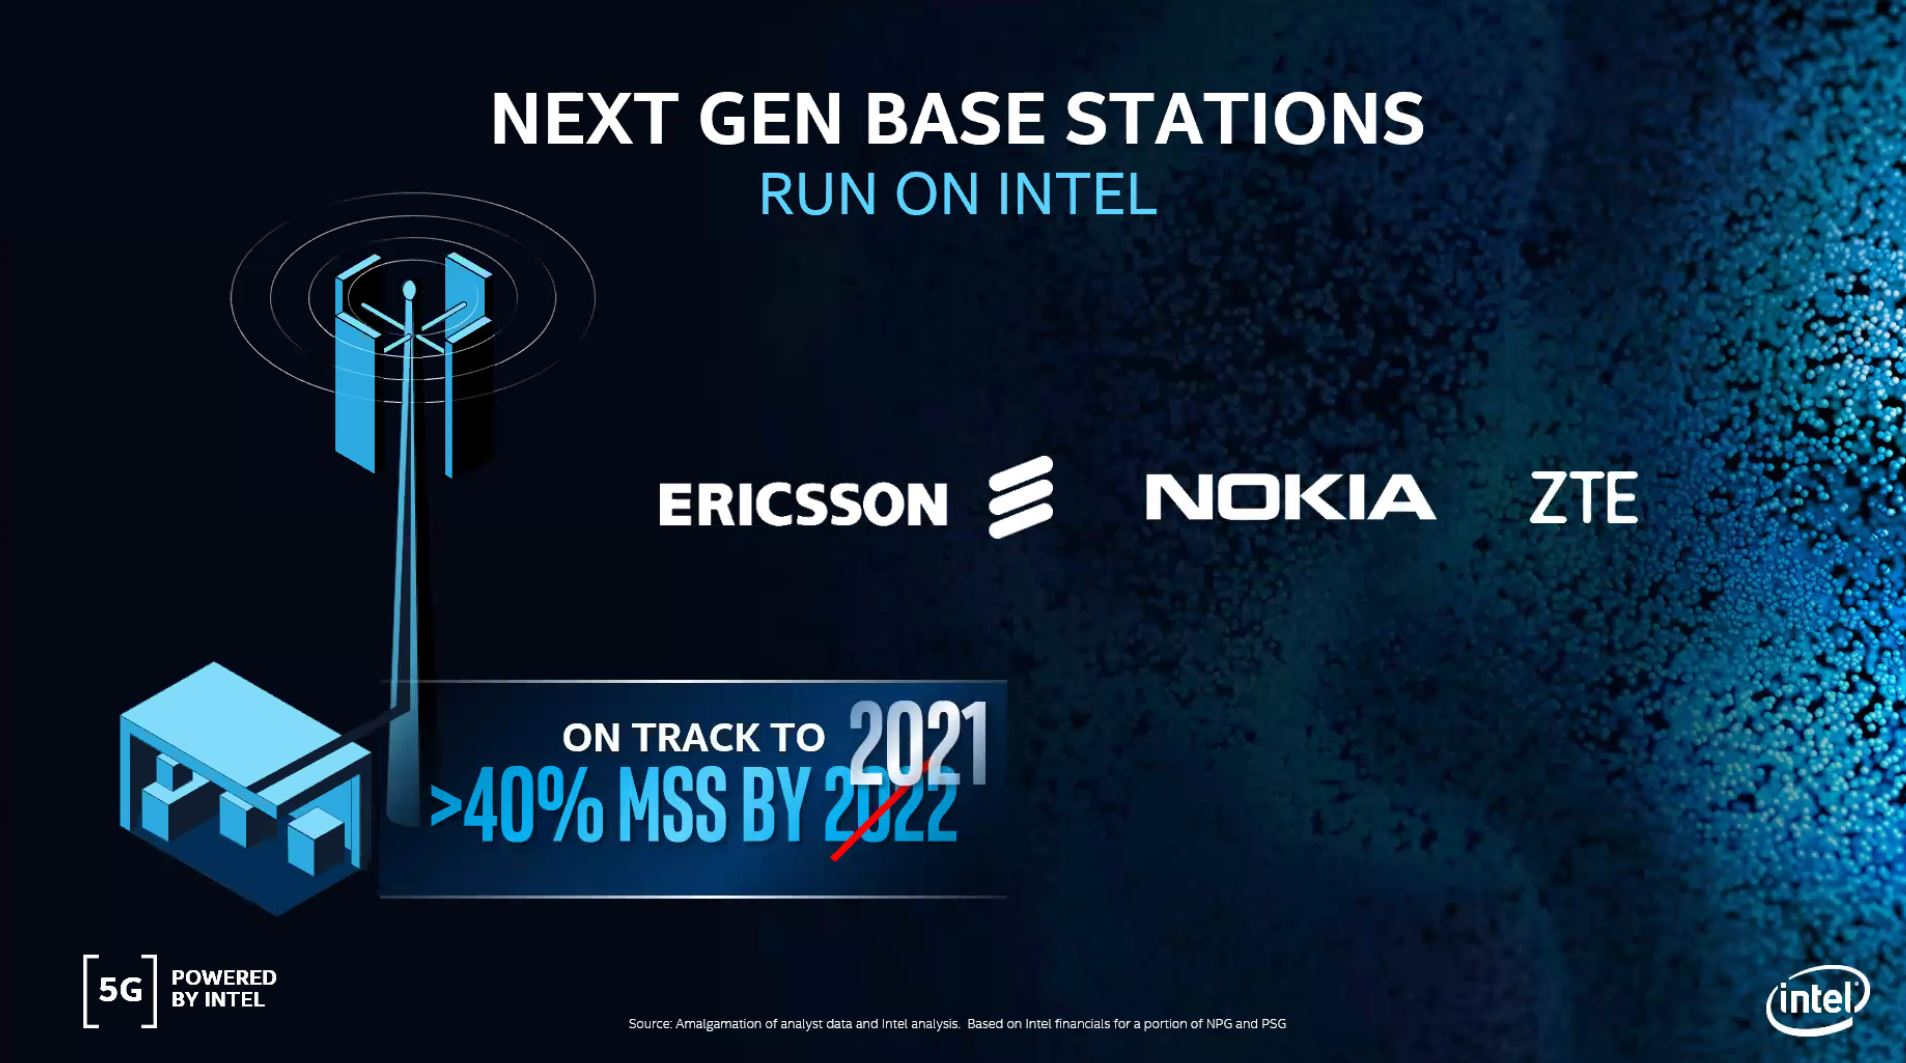 5G Base Station 40 Percent Intel MSS BY 2021